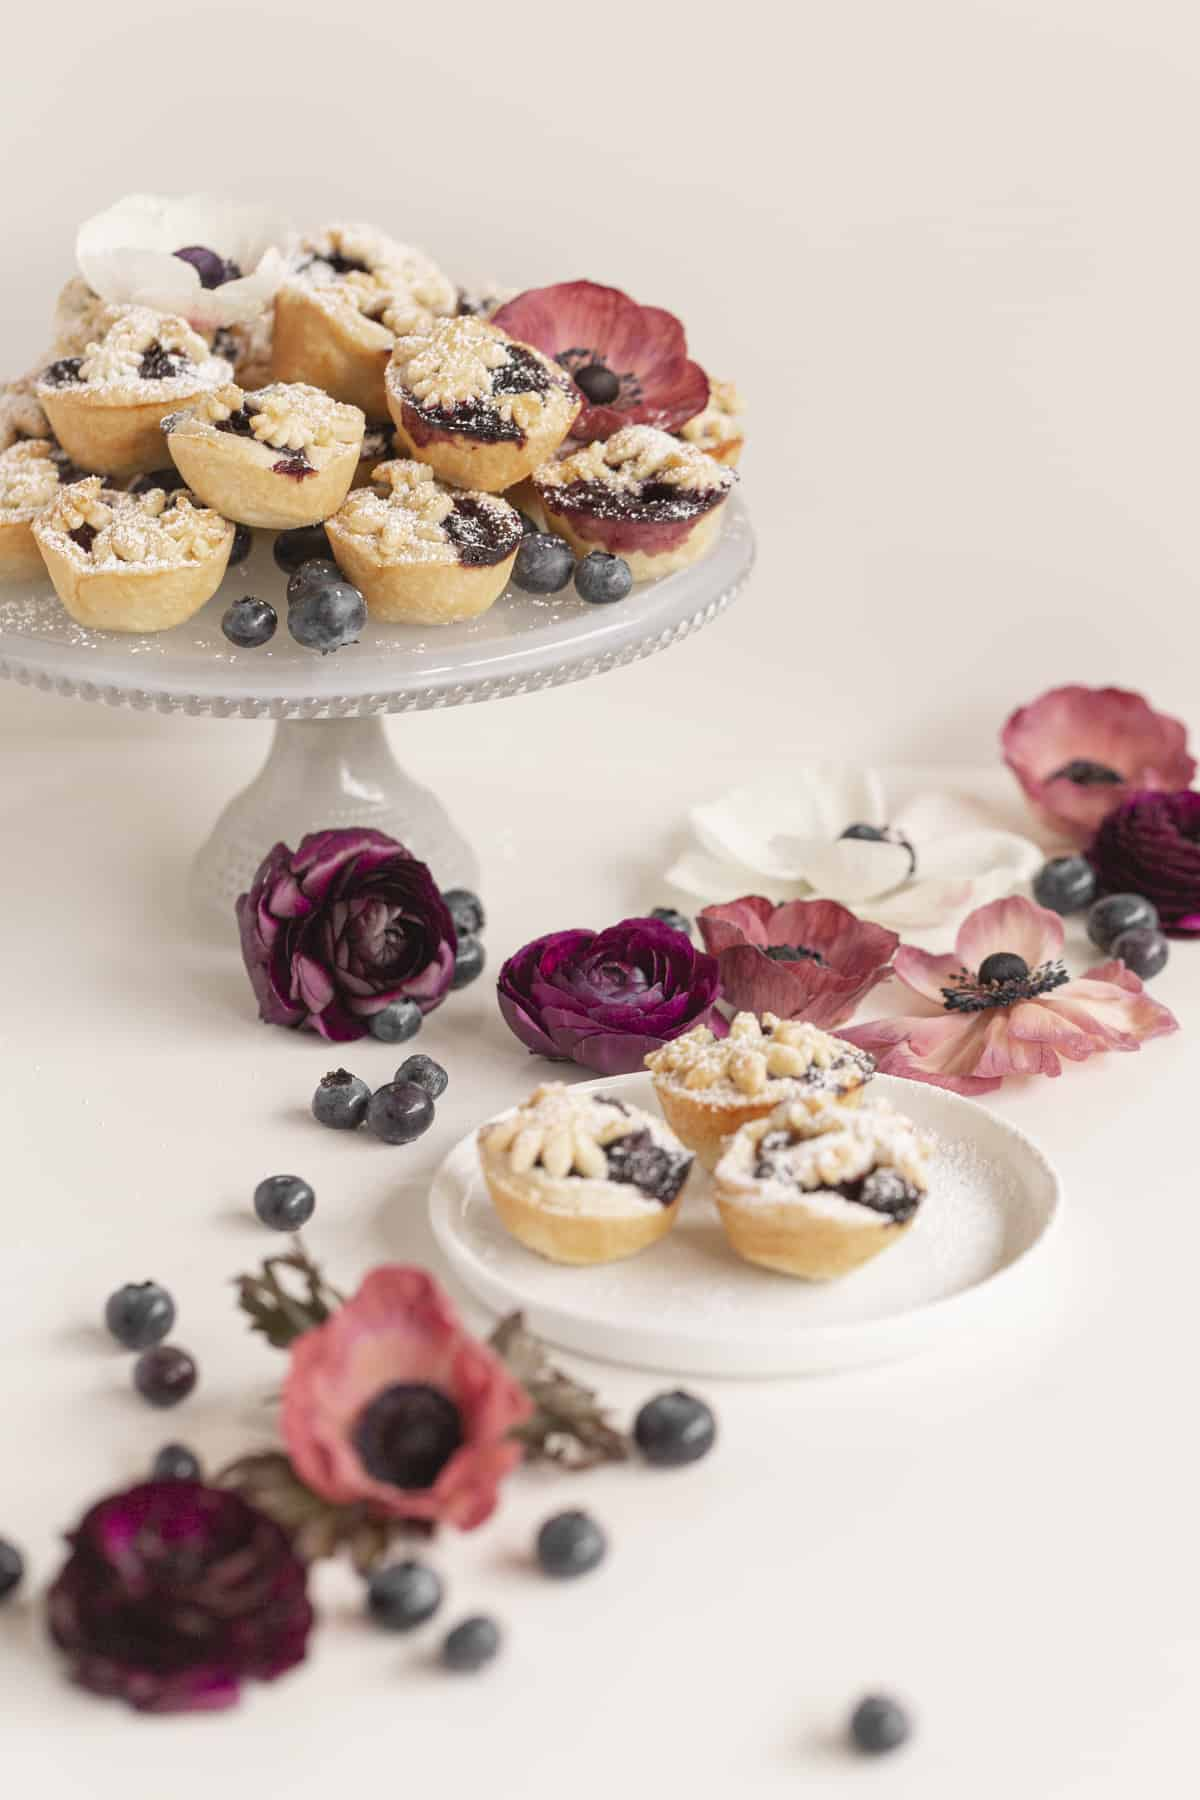 mini pies on a cake stand and plate with flowers